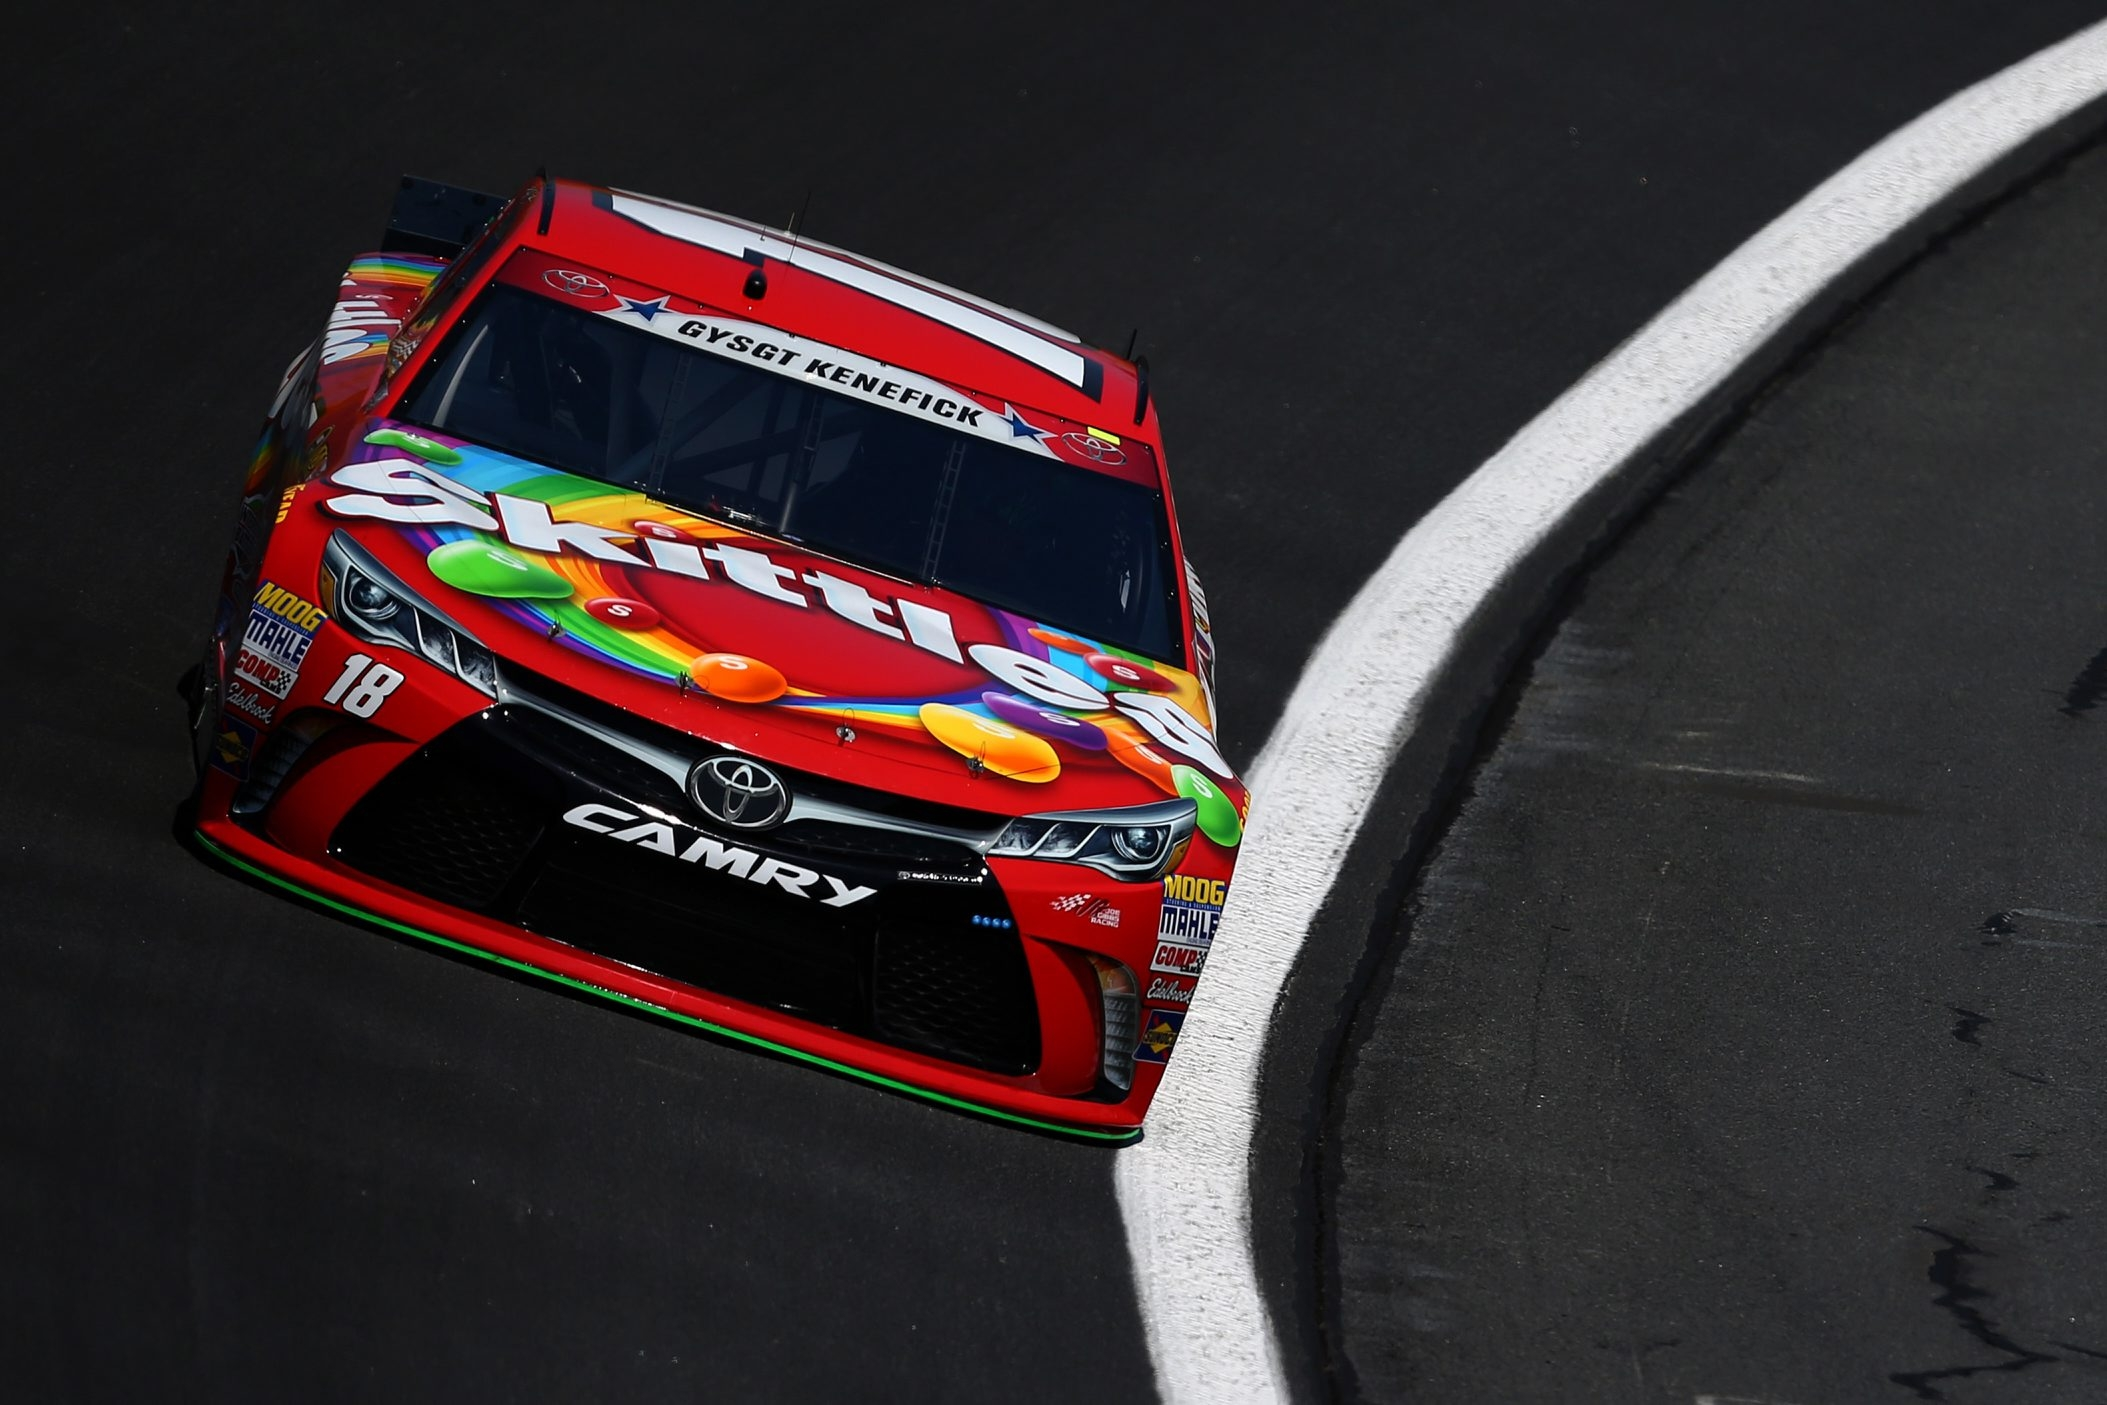 Kyle Busch's No. 18 Skittles Toyota will sport the name of slain Marine Gunnery Sgt. Aaron M. Kenefick on its windshield during the Coca-Cola 600 on Sunday in Charlotte, N.C.